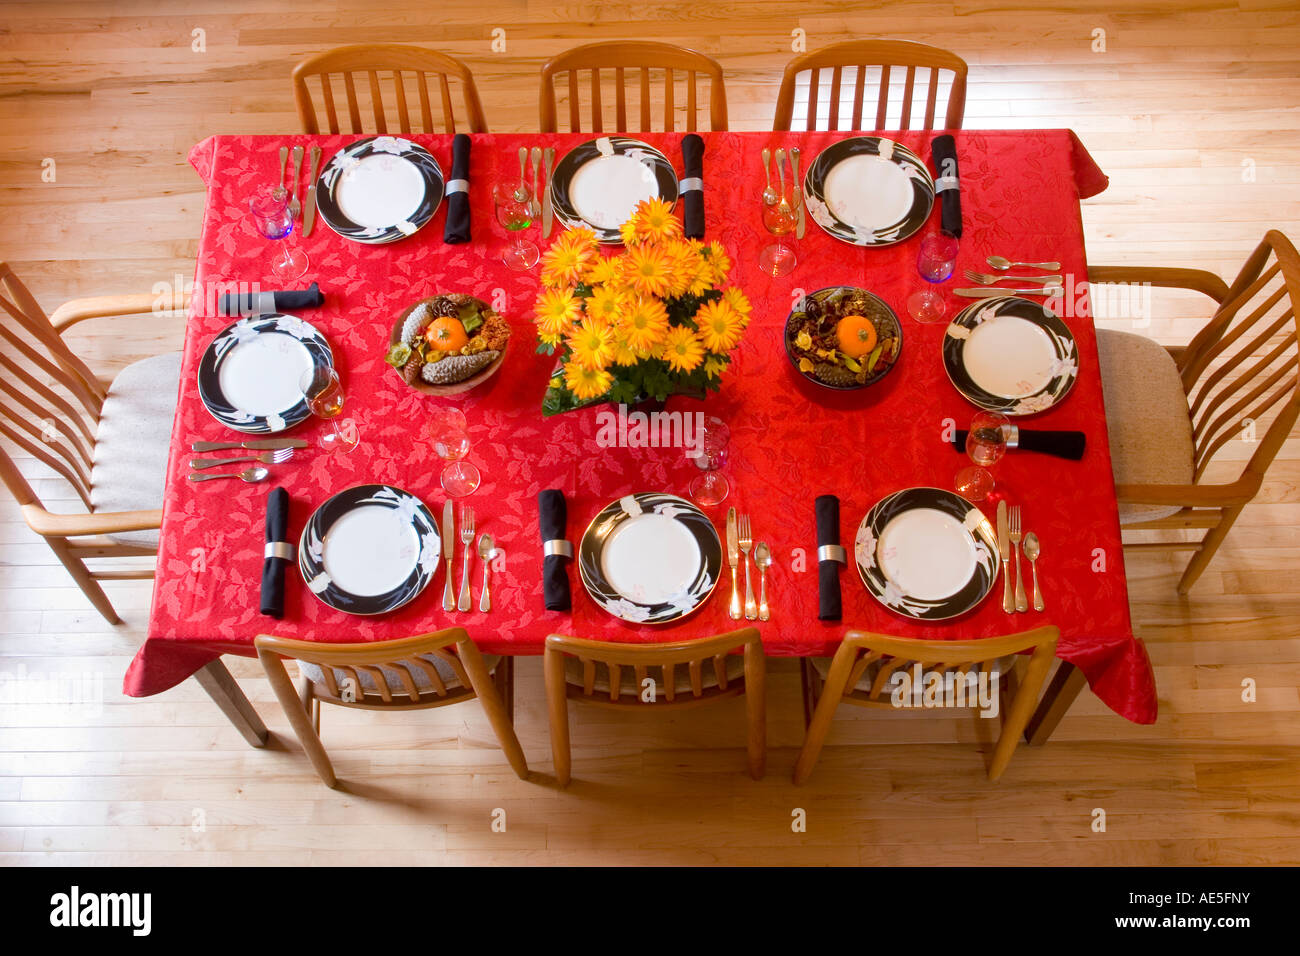 Aerial View Of Dining Room Table Place Settings With Red Tablecloth Stock Photo Alamy